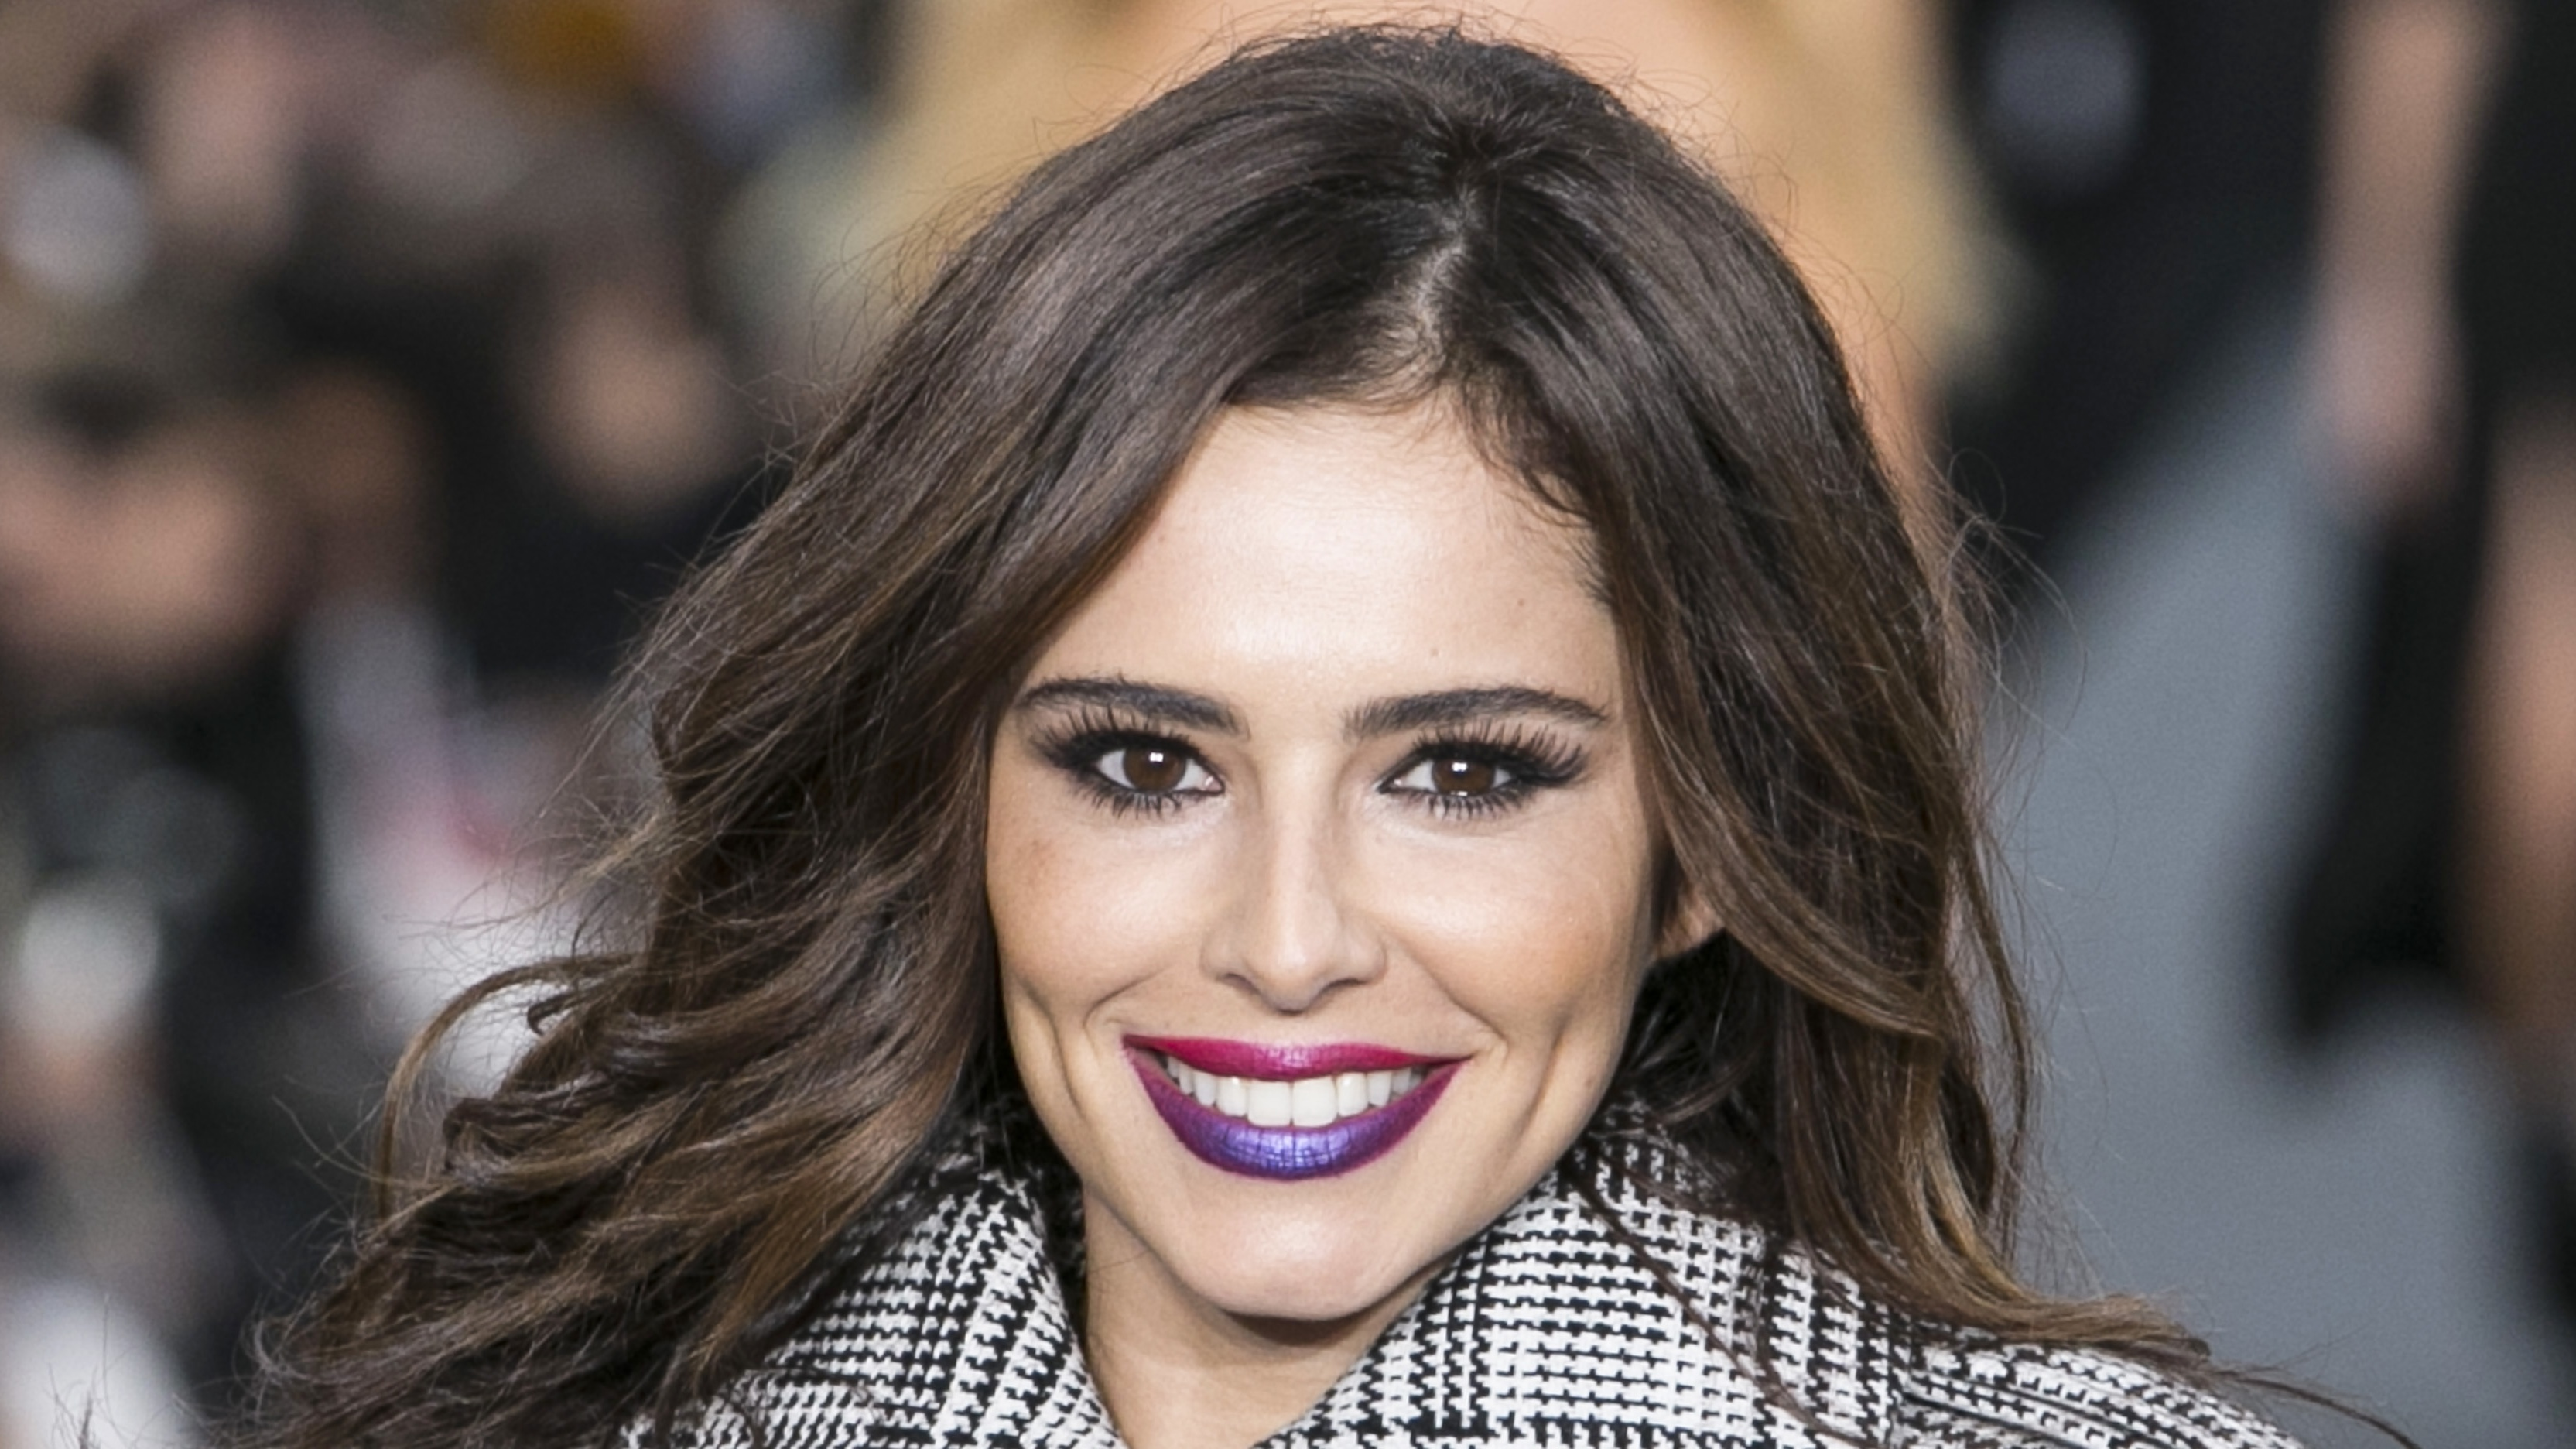 Watch Cheryl model at Paris Fashion Week here!